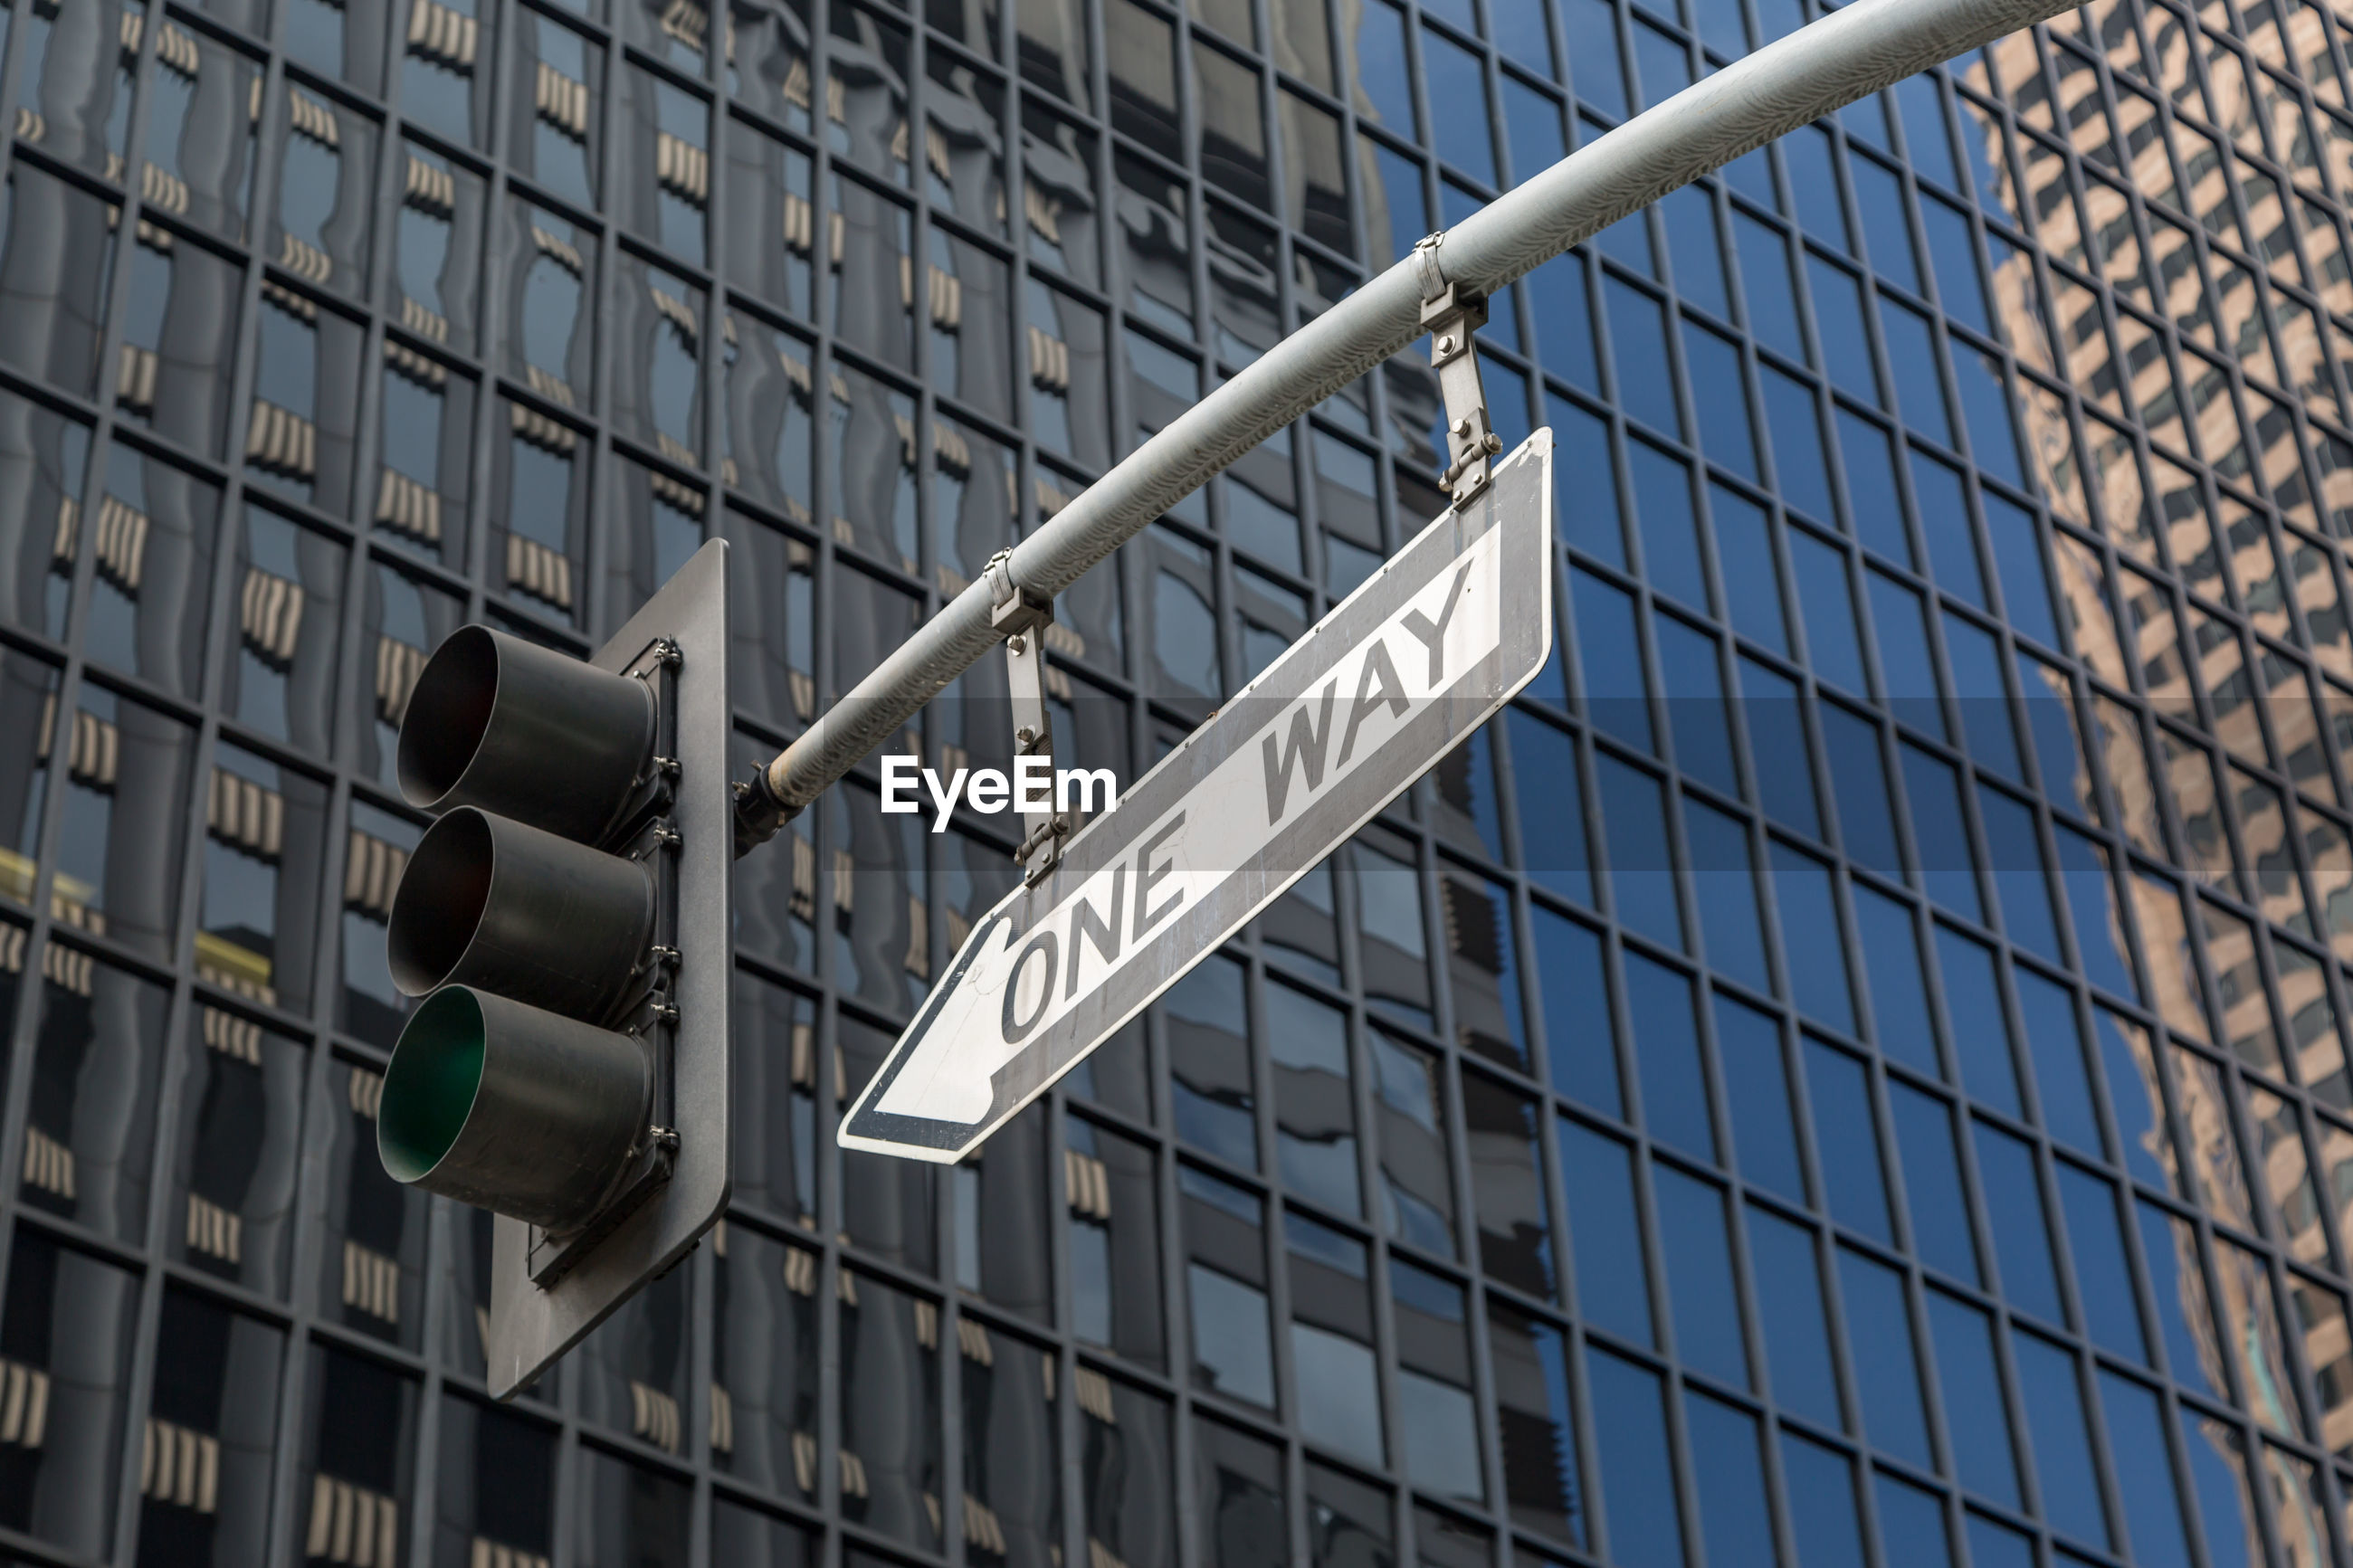 Low angle view of directional sign with stoplight against modern building in city